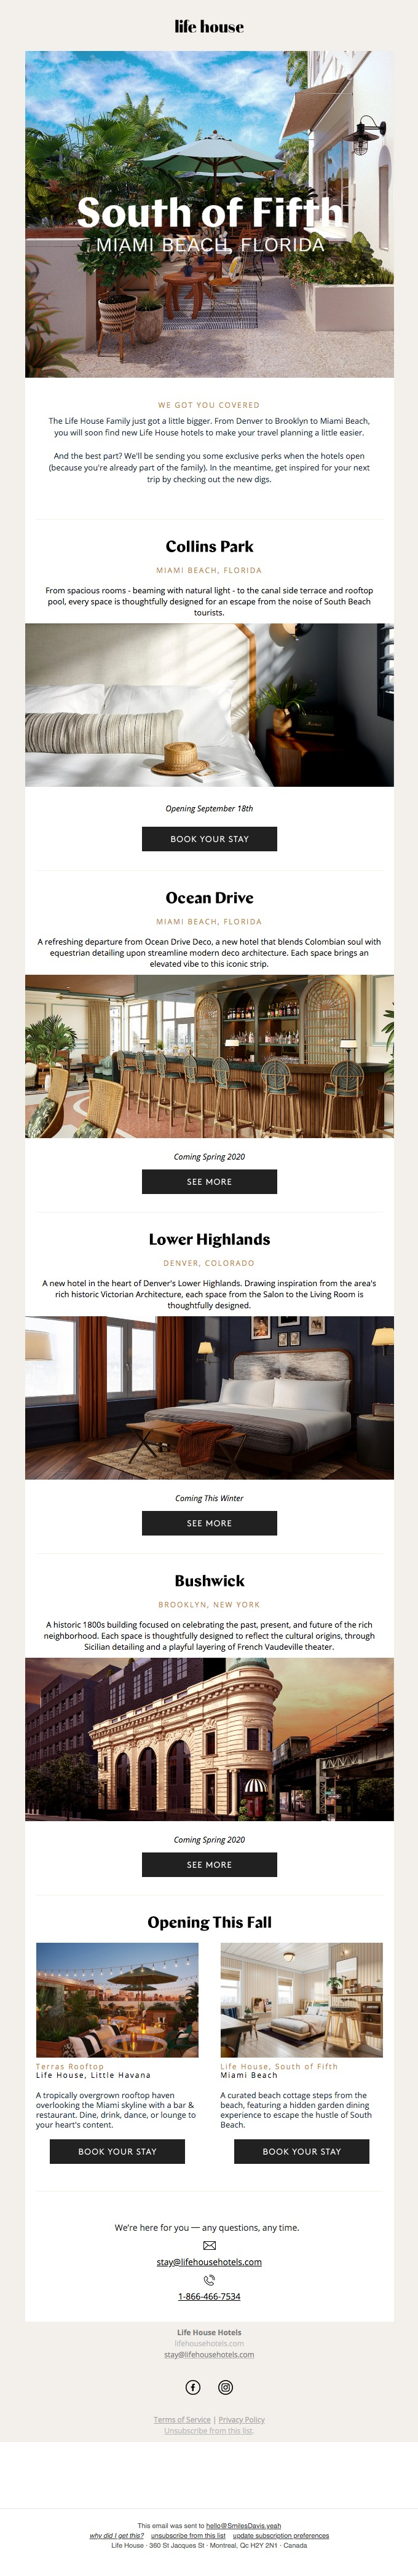 Life House Hotels includes social share buttons in newsletter